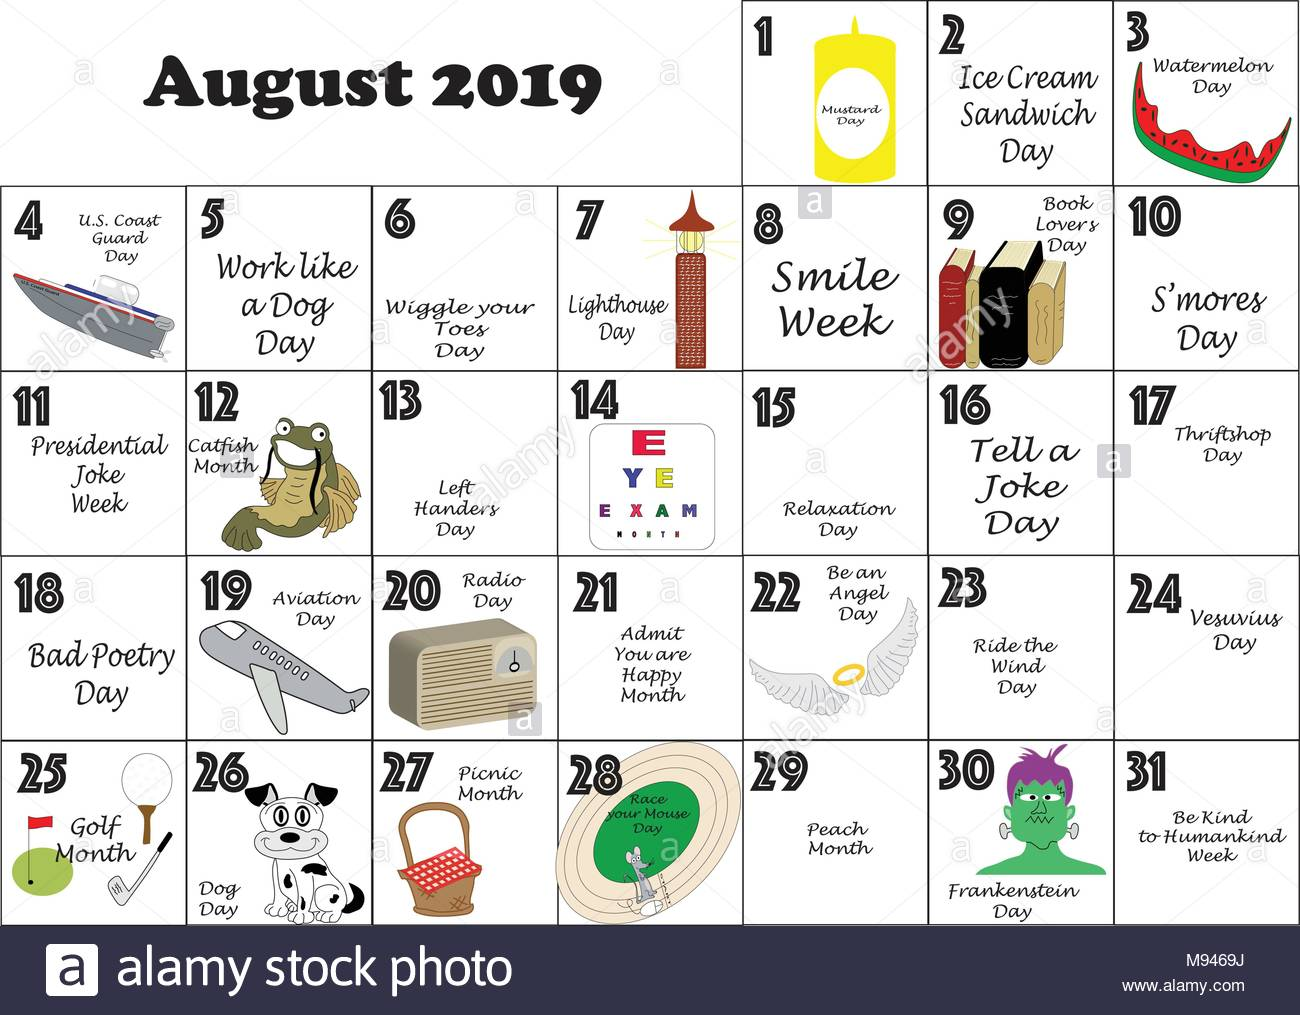 August 2019 Calendar With Holidays.August 2019 Monthly Calendar Illustrated And Annotated With Daily